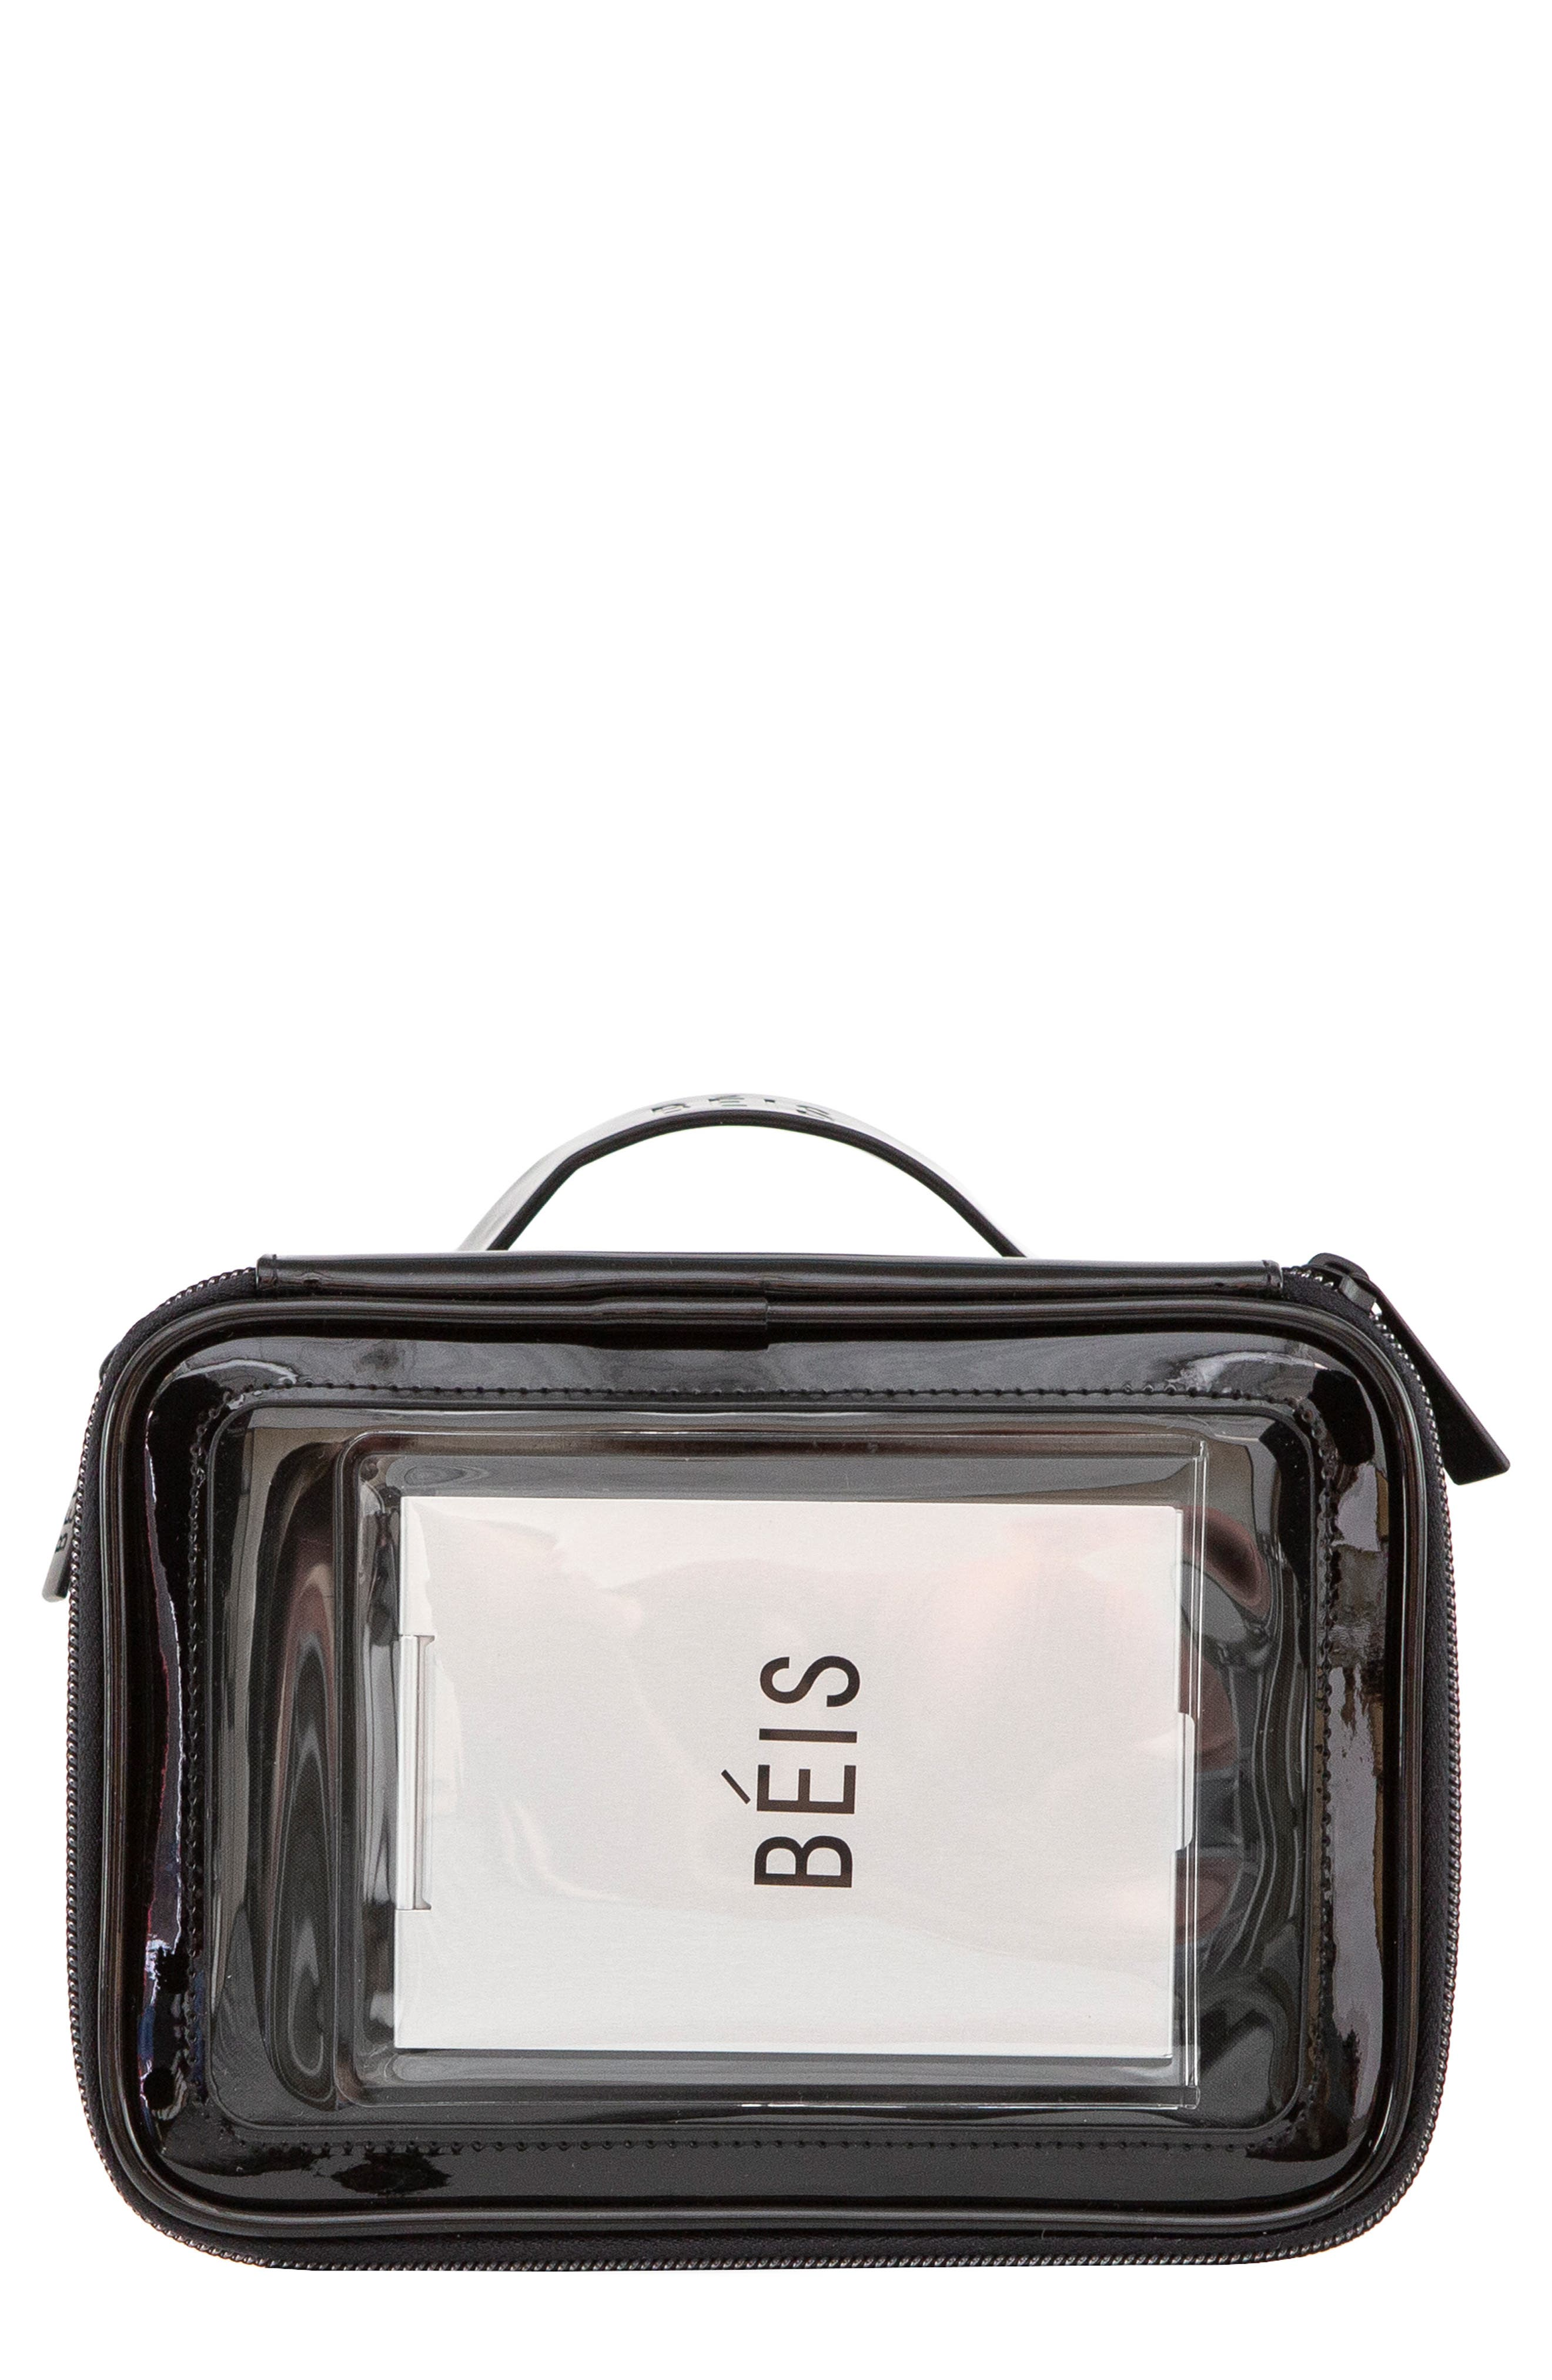 Beis THE CARRY-ON COSMETICS CASE